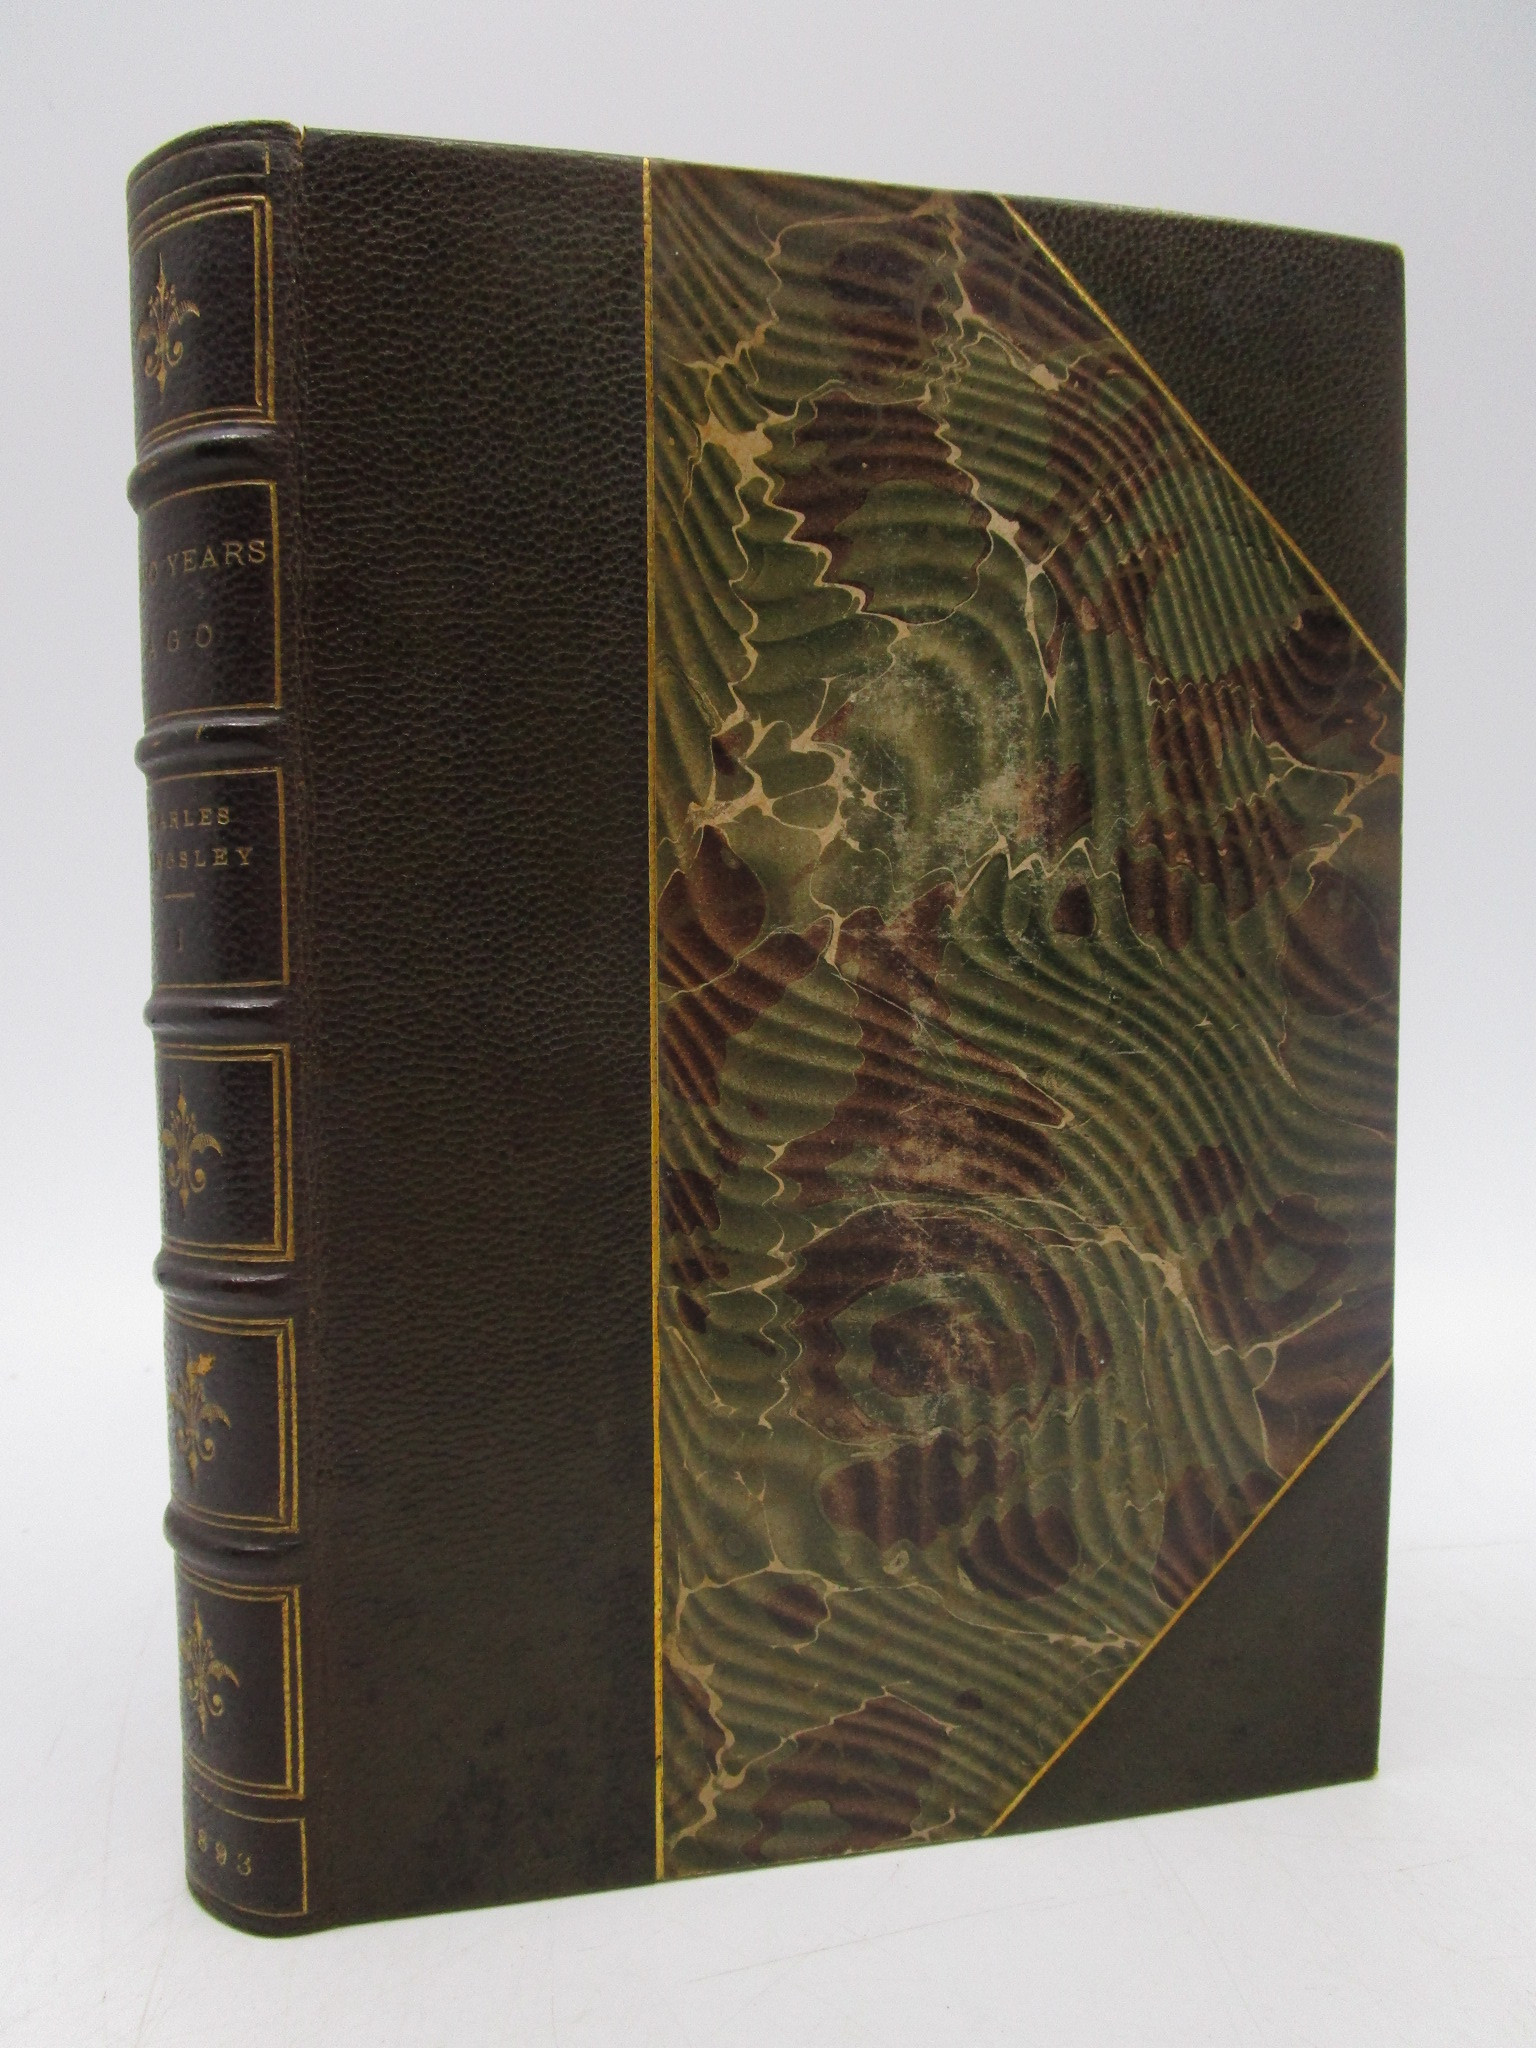 Image for The Works of Charles Kingsley. Eversley Edition (13 Volumes)